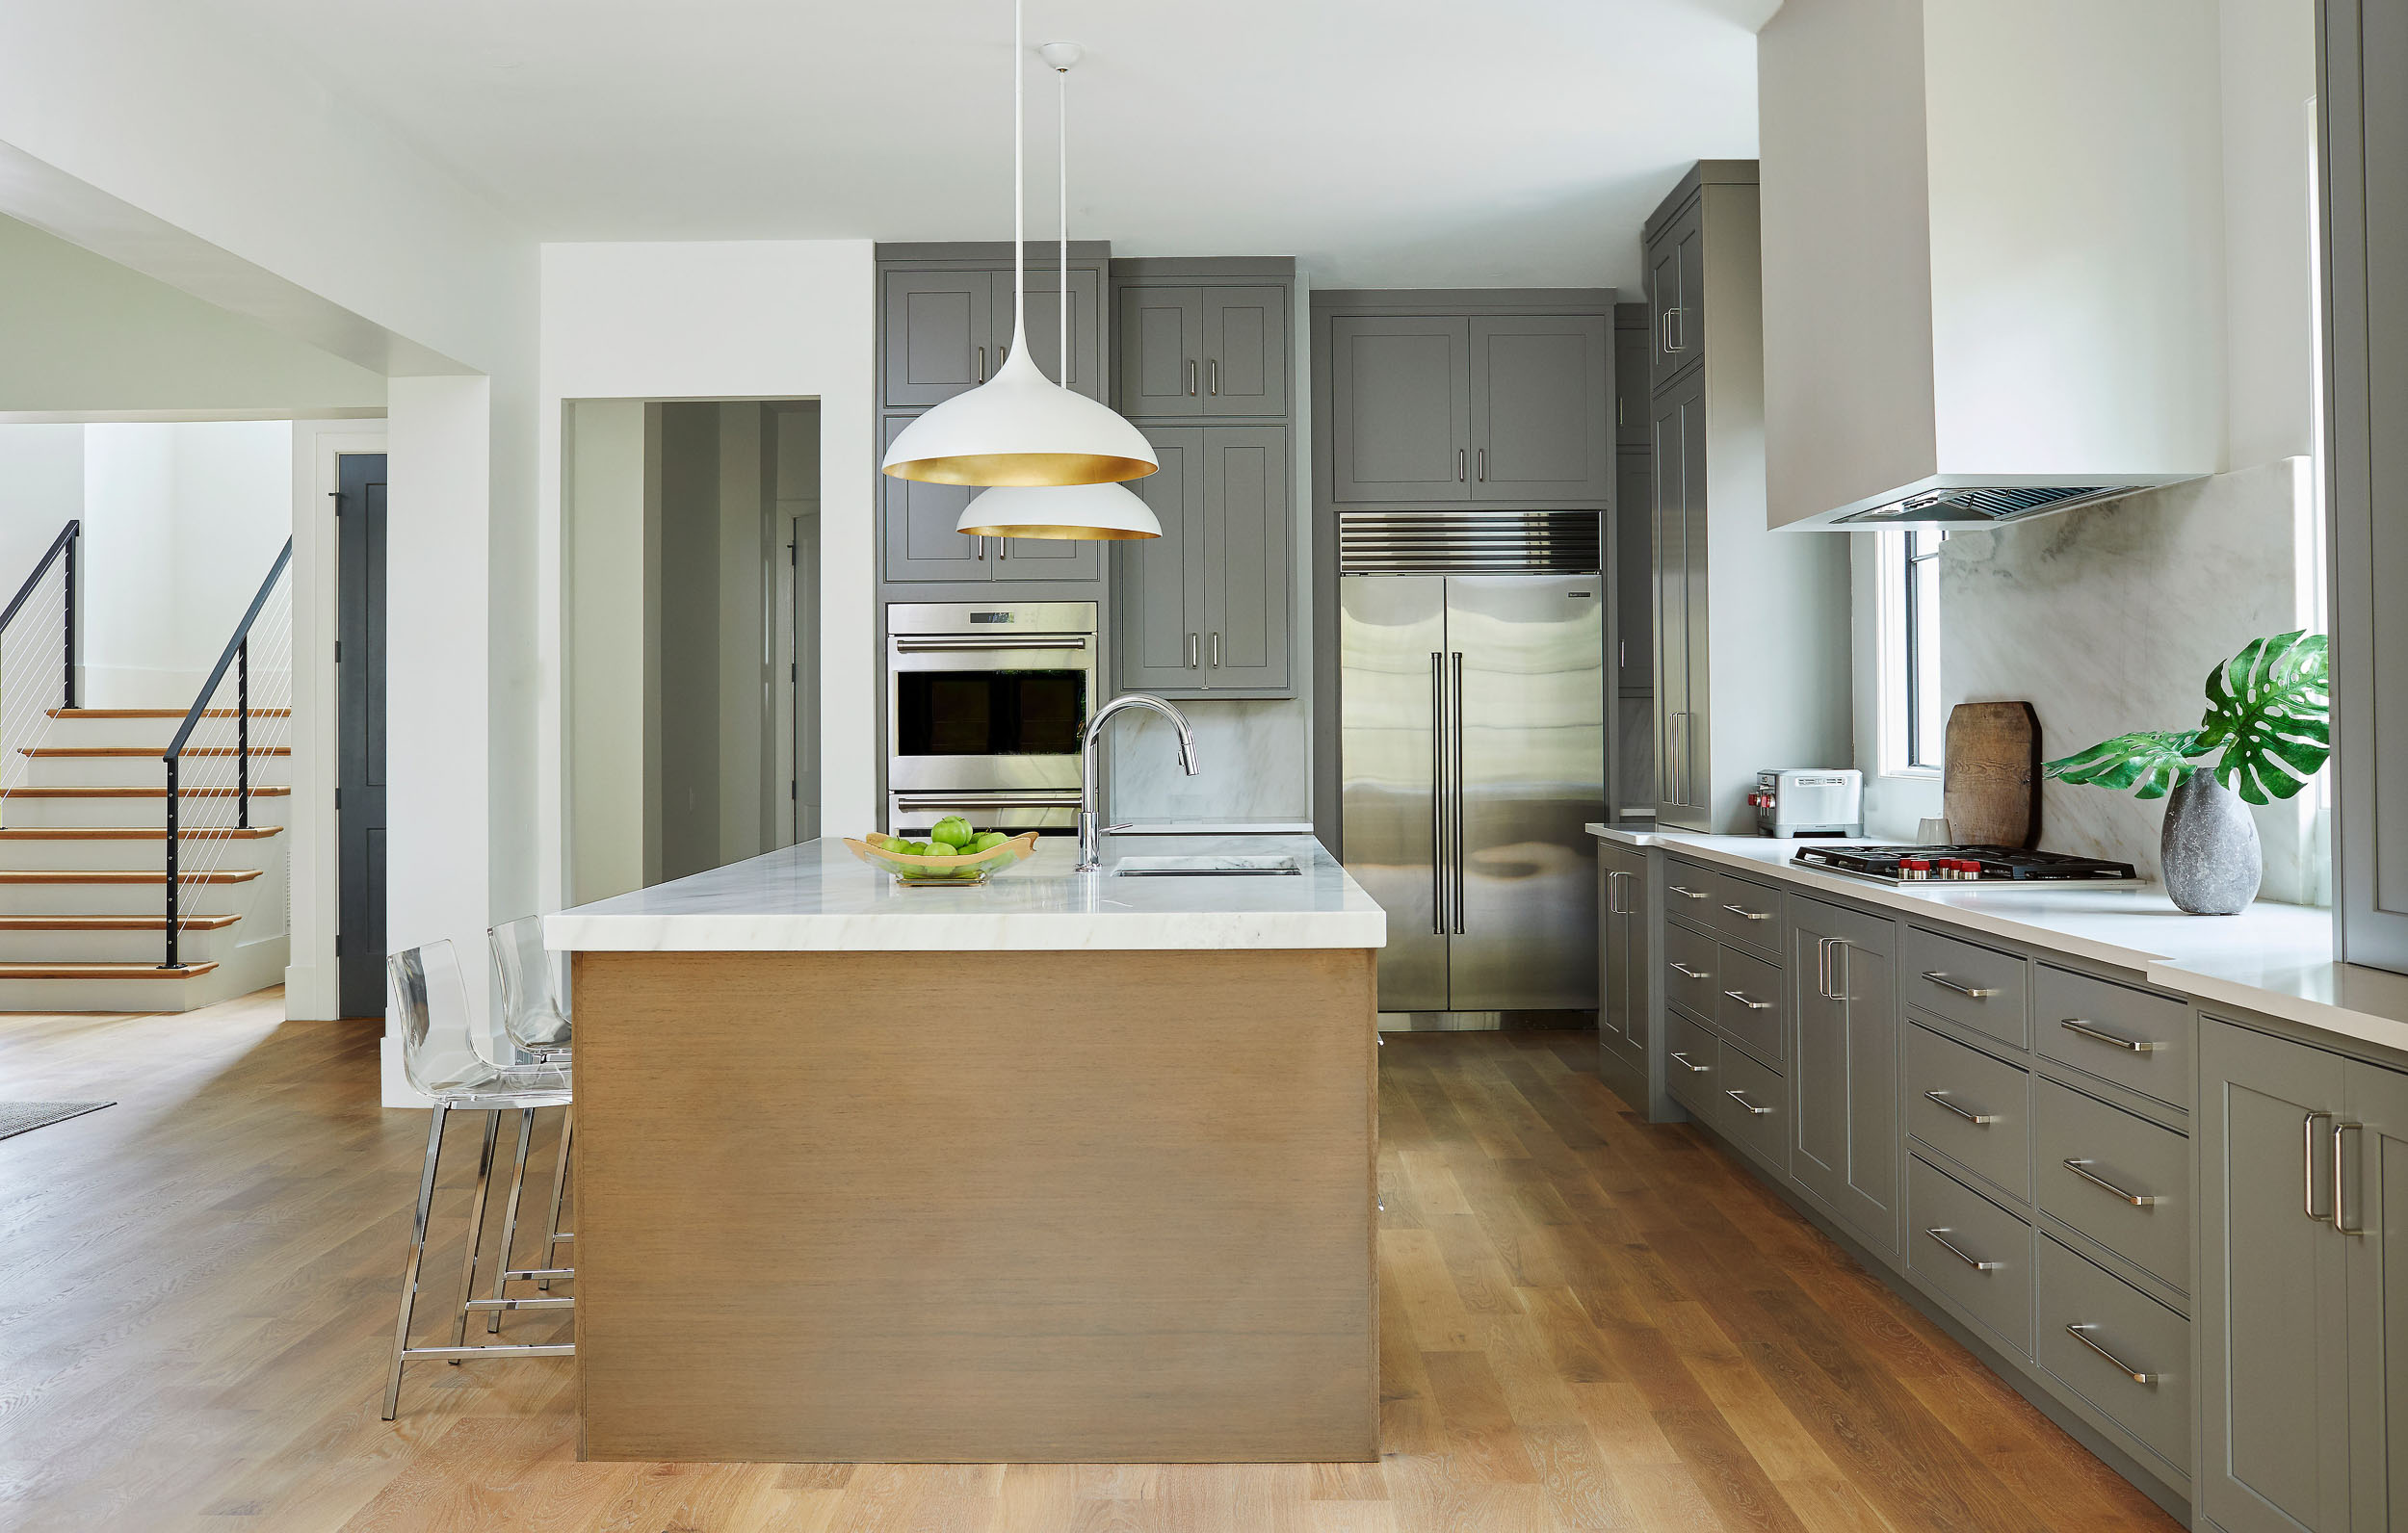 Are Appliance Suites a Good Deal When Remodeling a Kitchen?